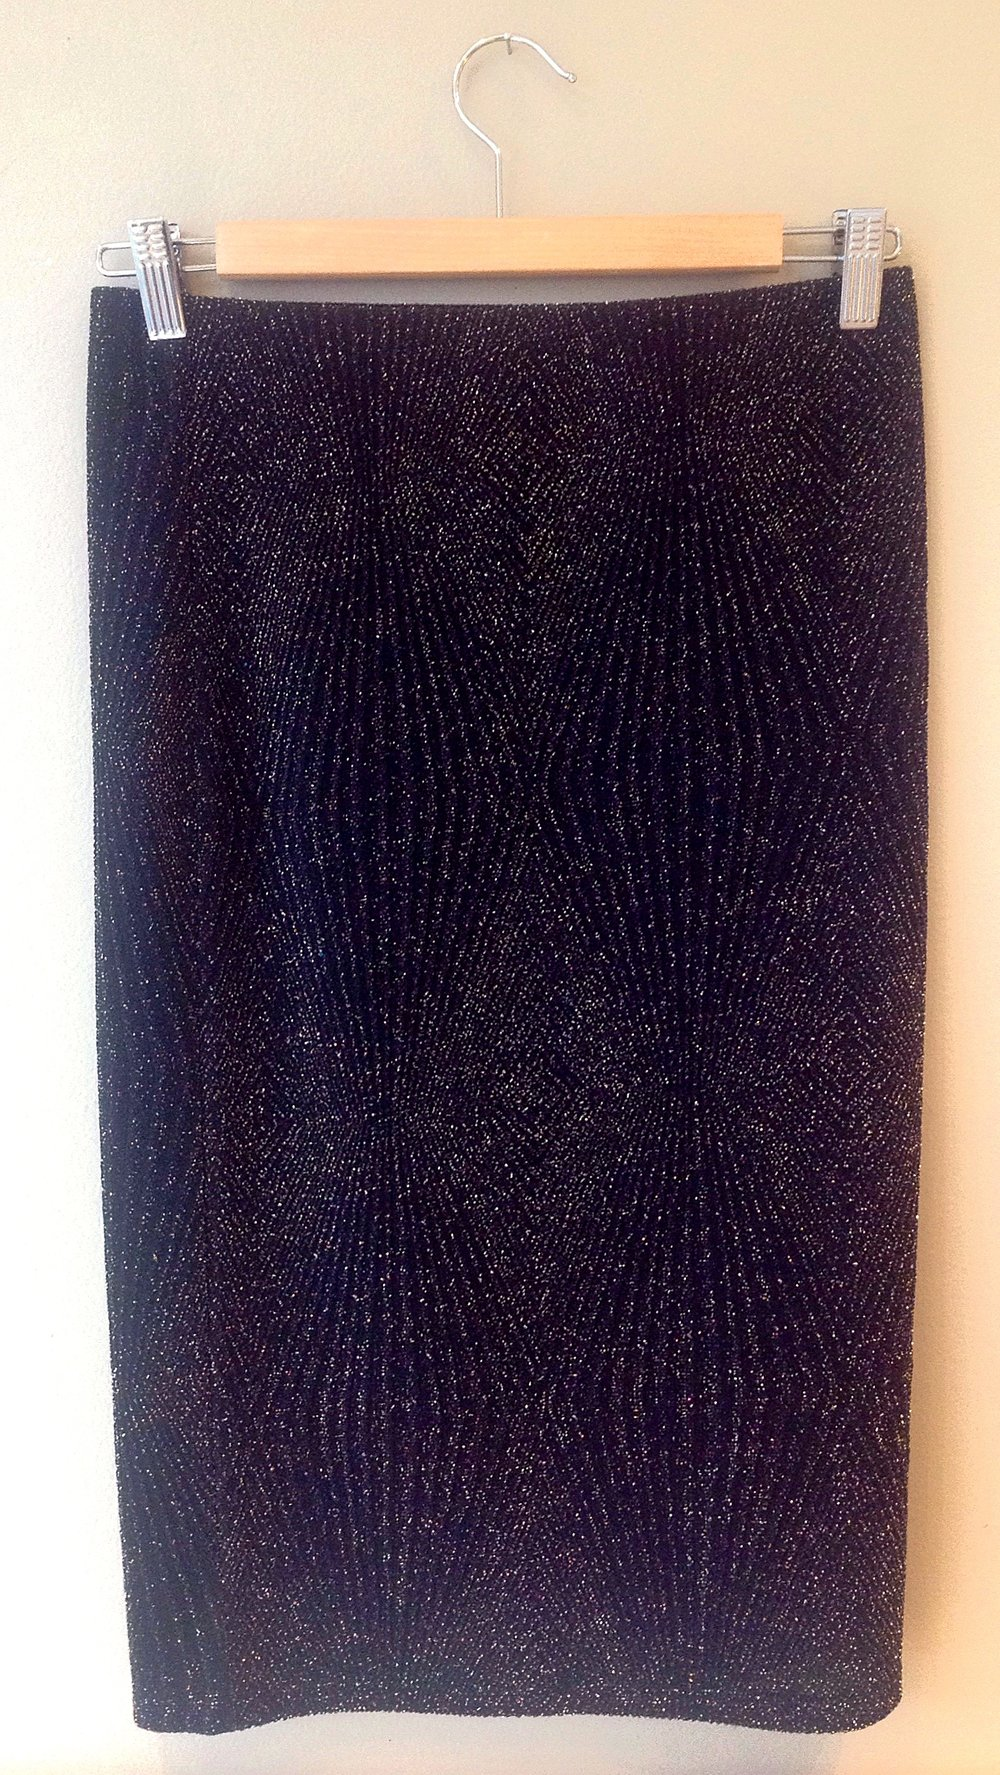 Black/metallic rib knit pencil skirt